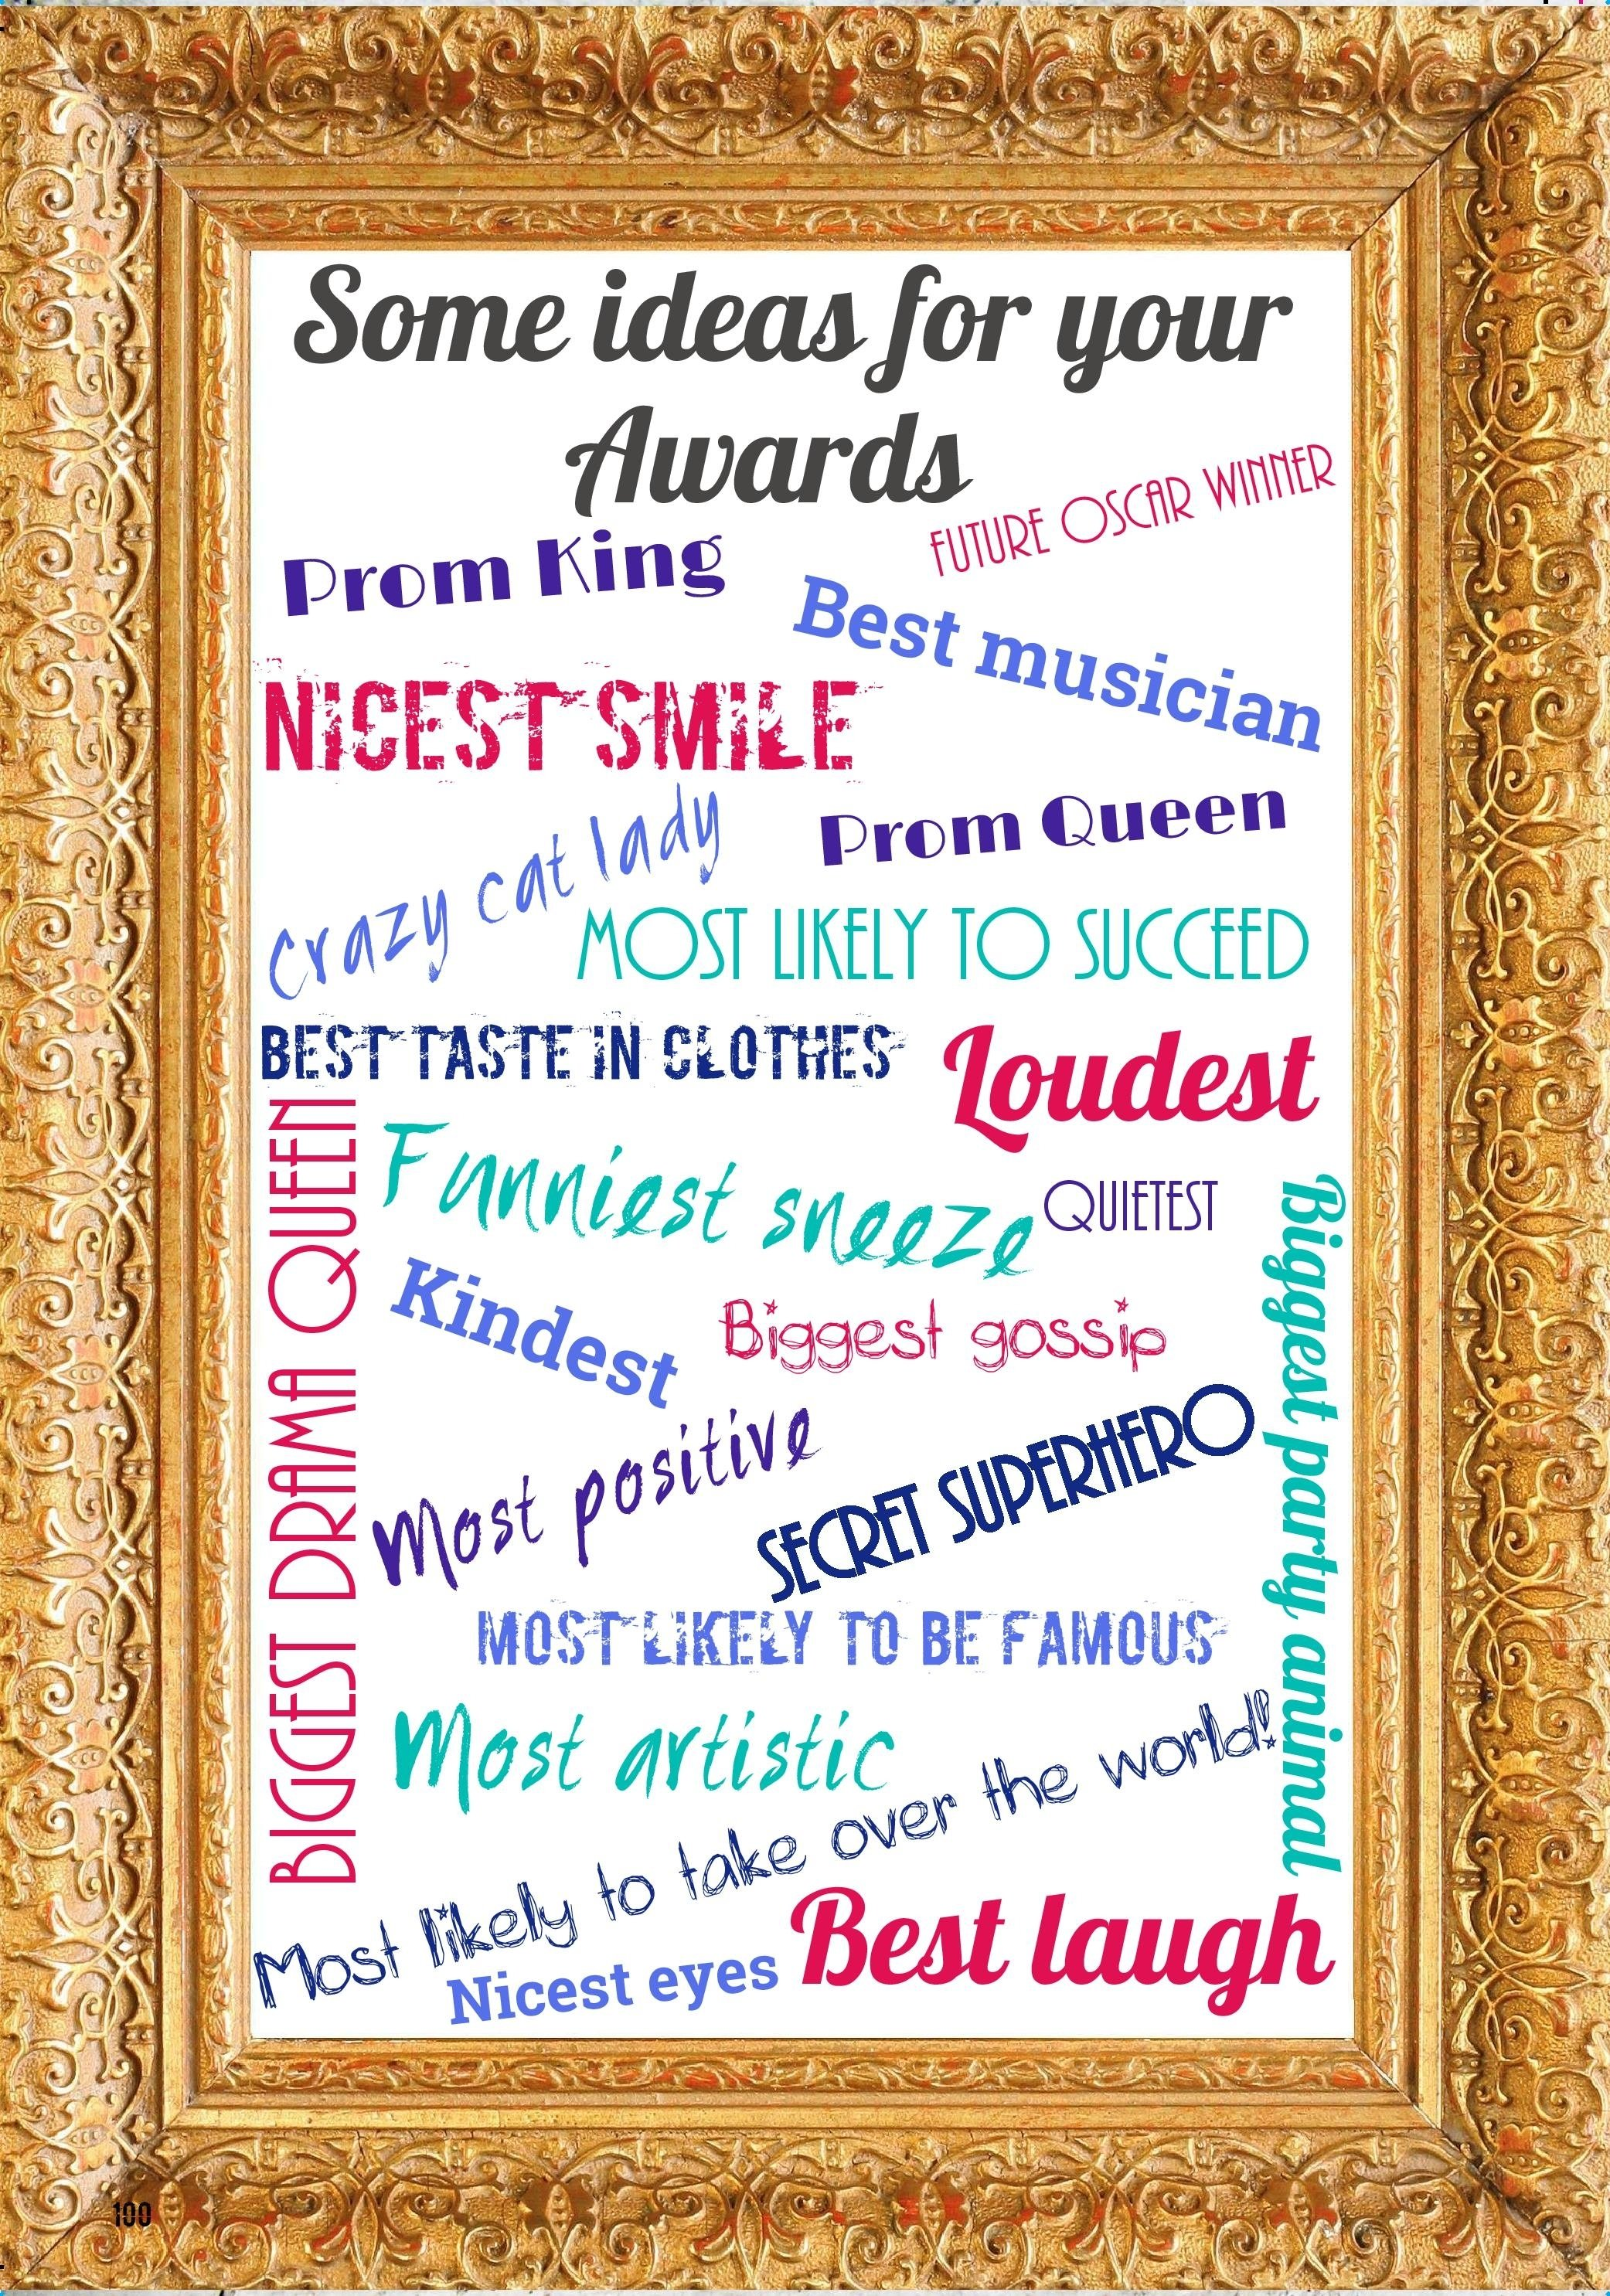 10 Beautiful Funny Award Ideas For Friends ideas for awards categories supporting your yearbook success 2 2021